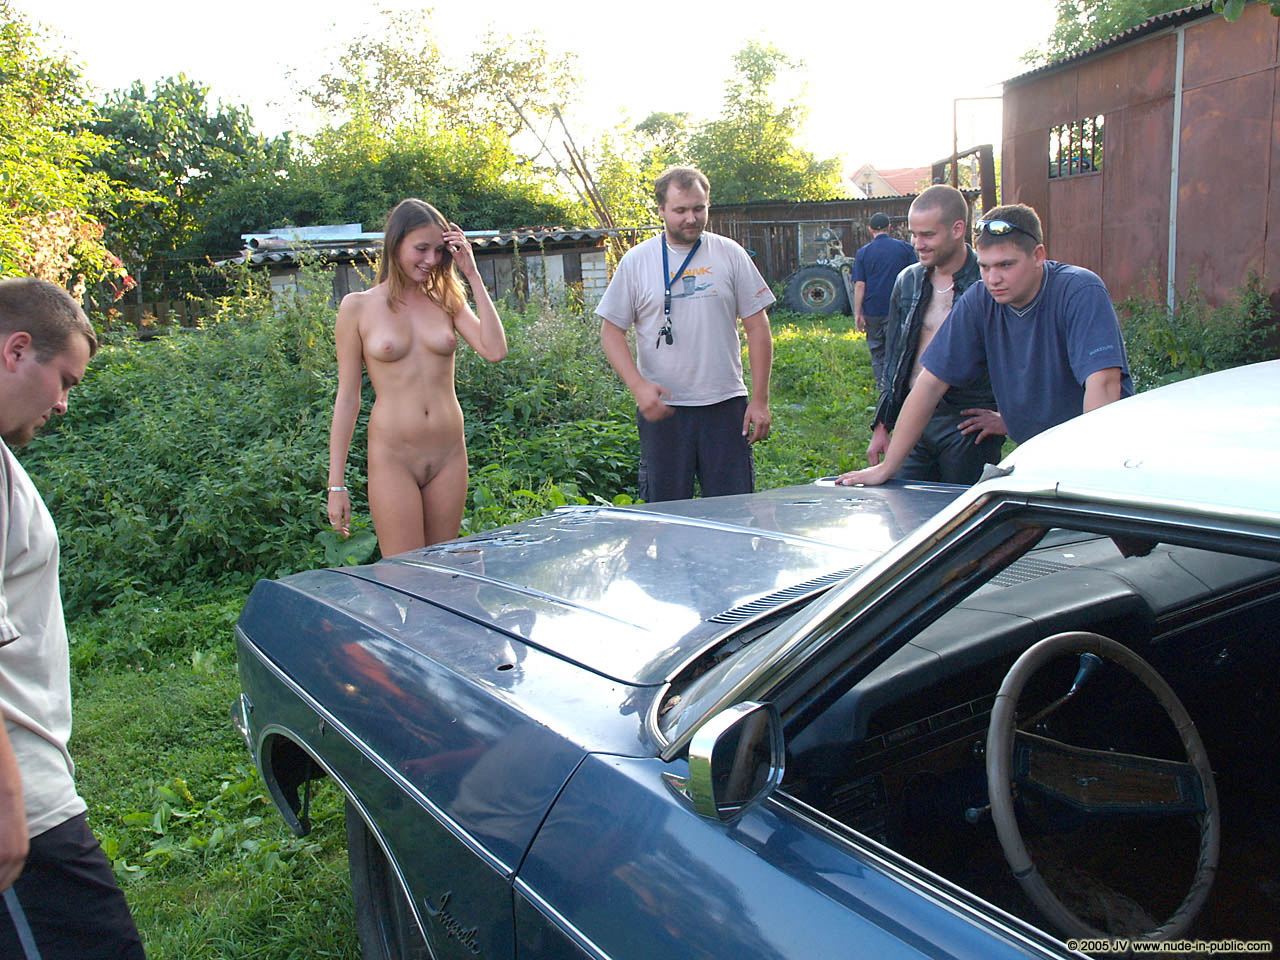 veronika-e-junkyard-cars-mechanic-nude-in-public-35